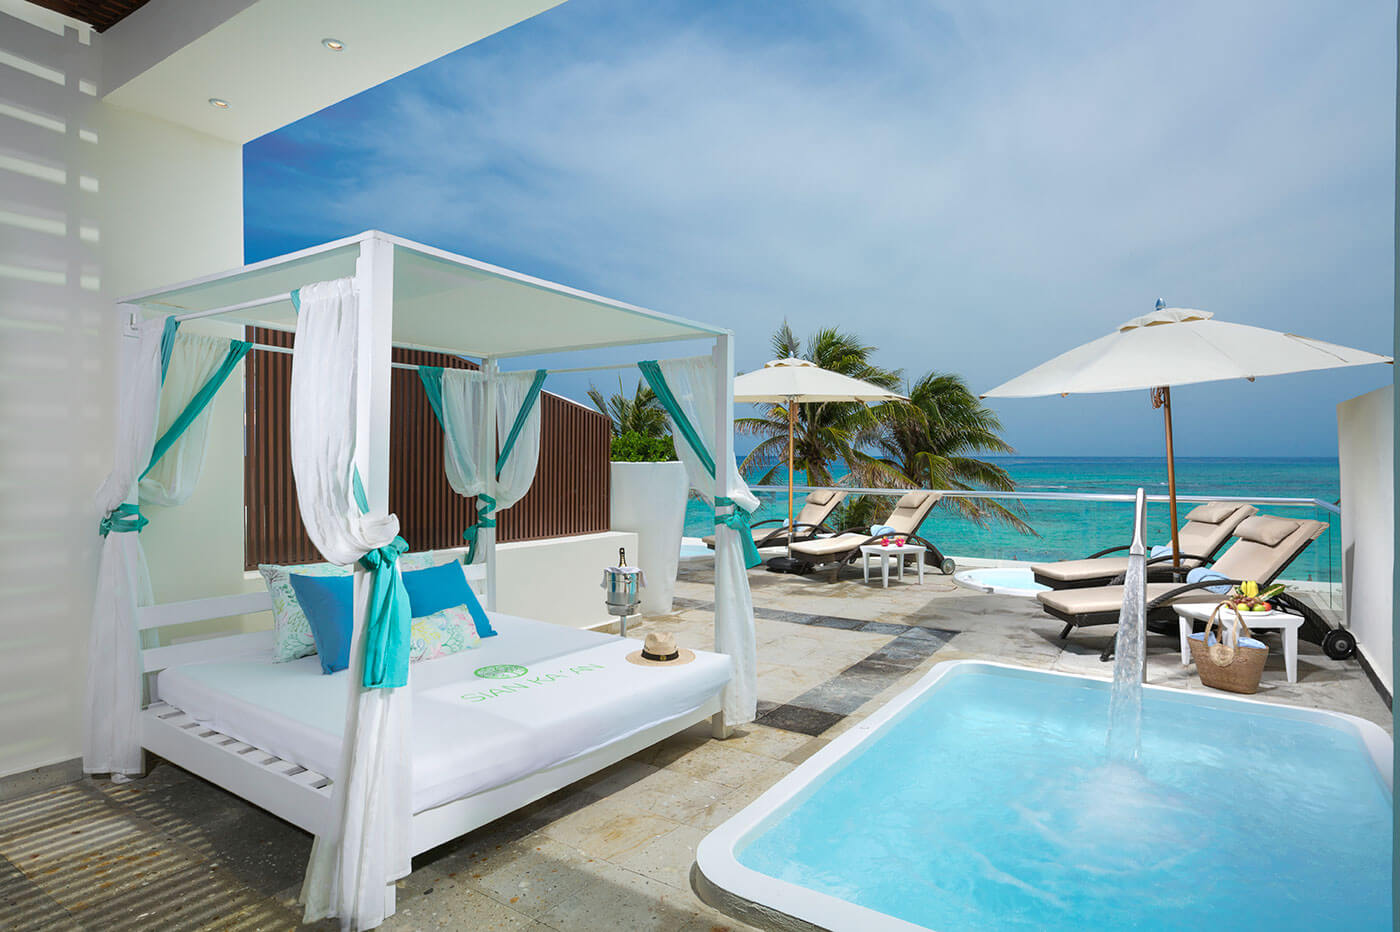 Terrace of Junior Suite with private pool in The Sian Ka'an at Grand Tulum Hotel